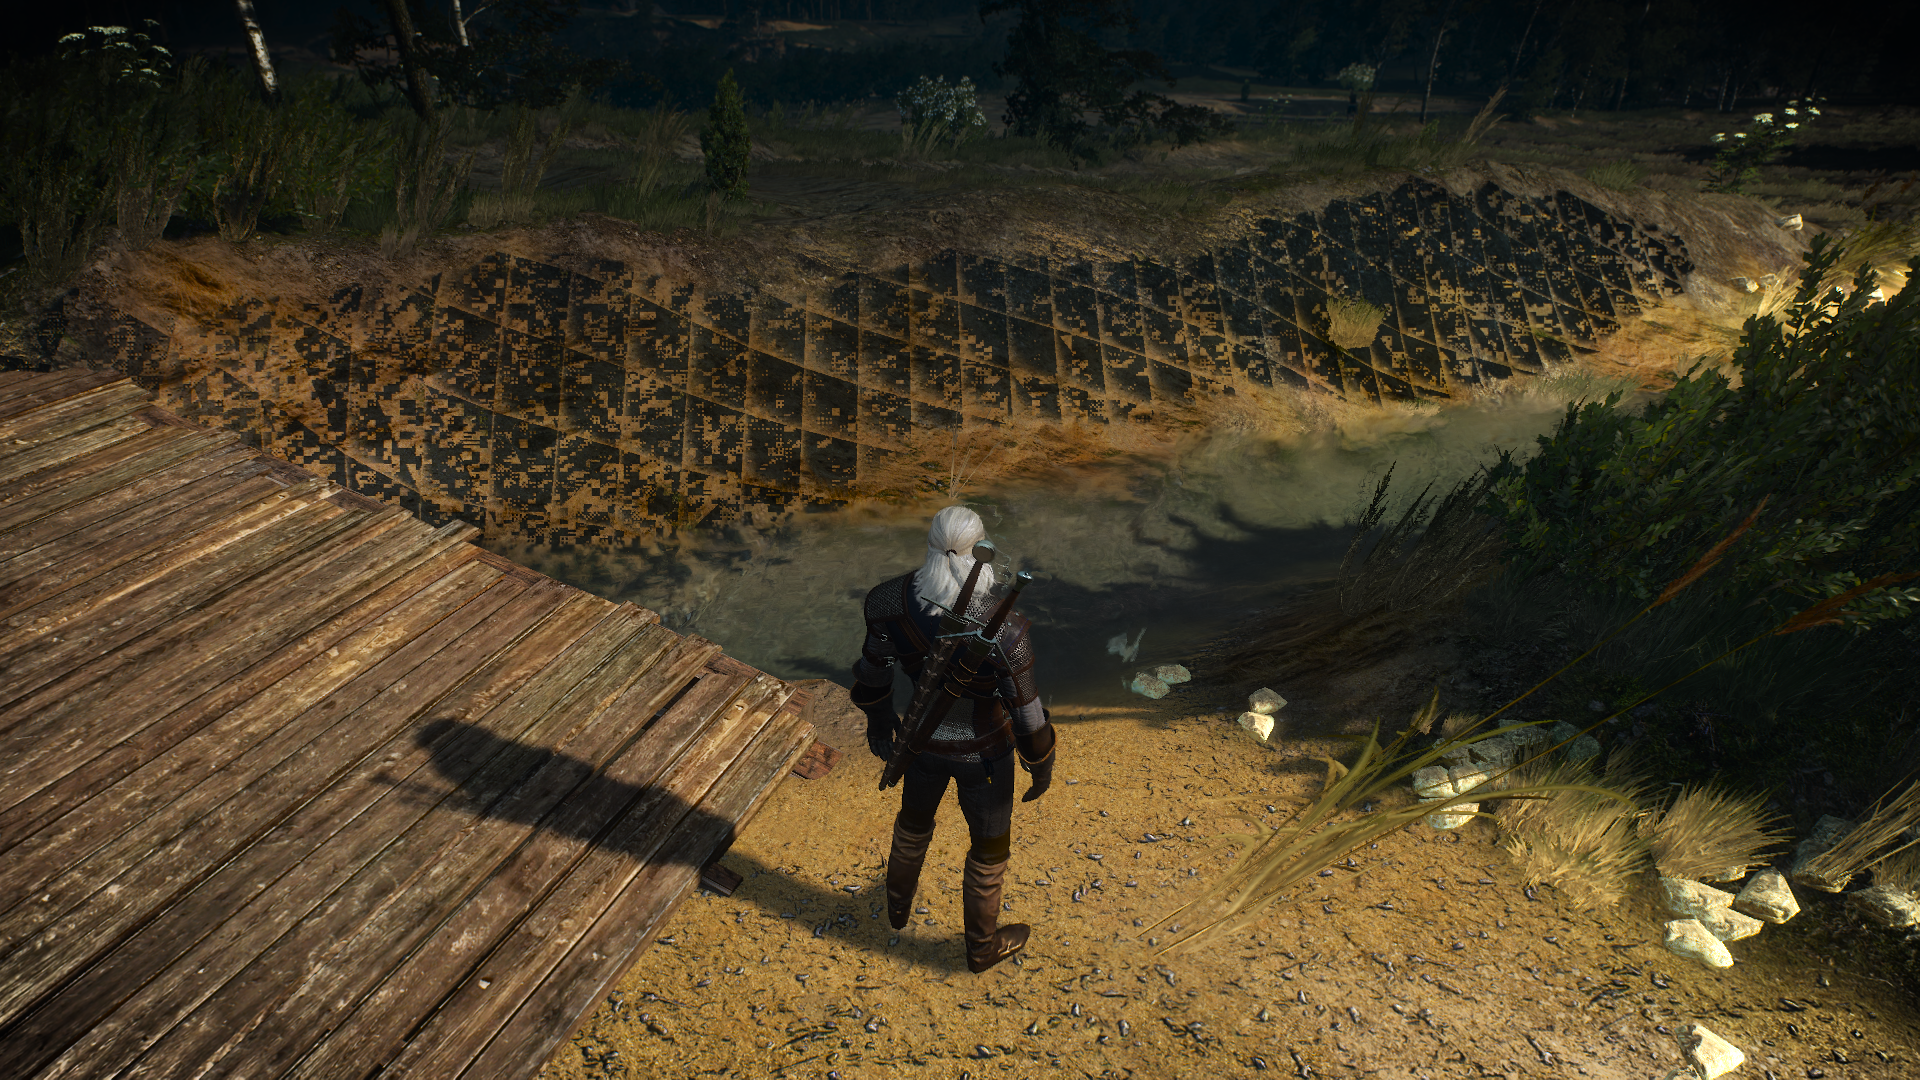 The Witcher 3 Texture Flickering · Issue #831 · doitsujin